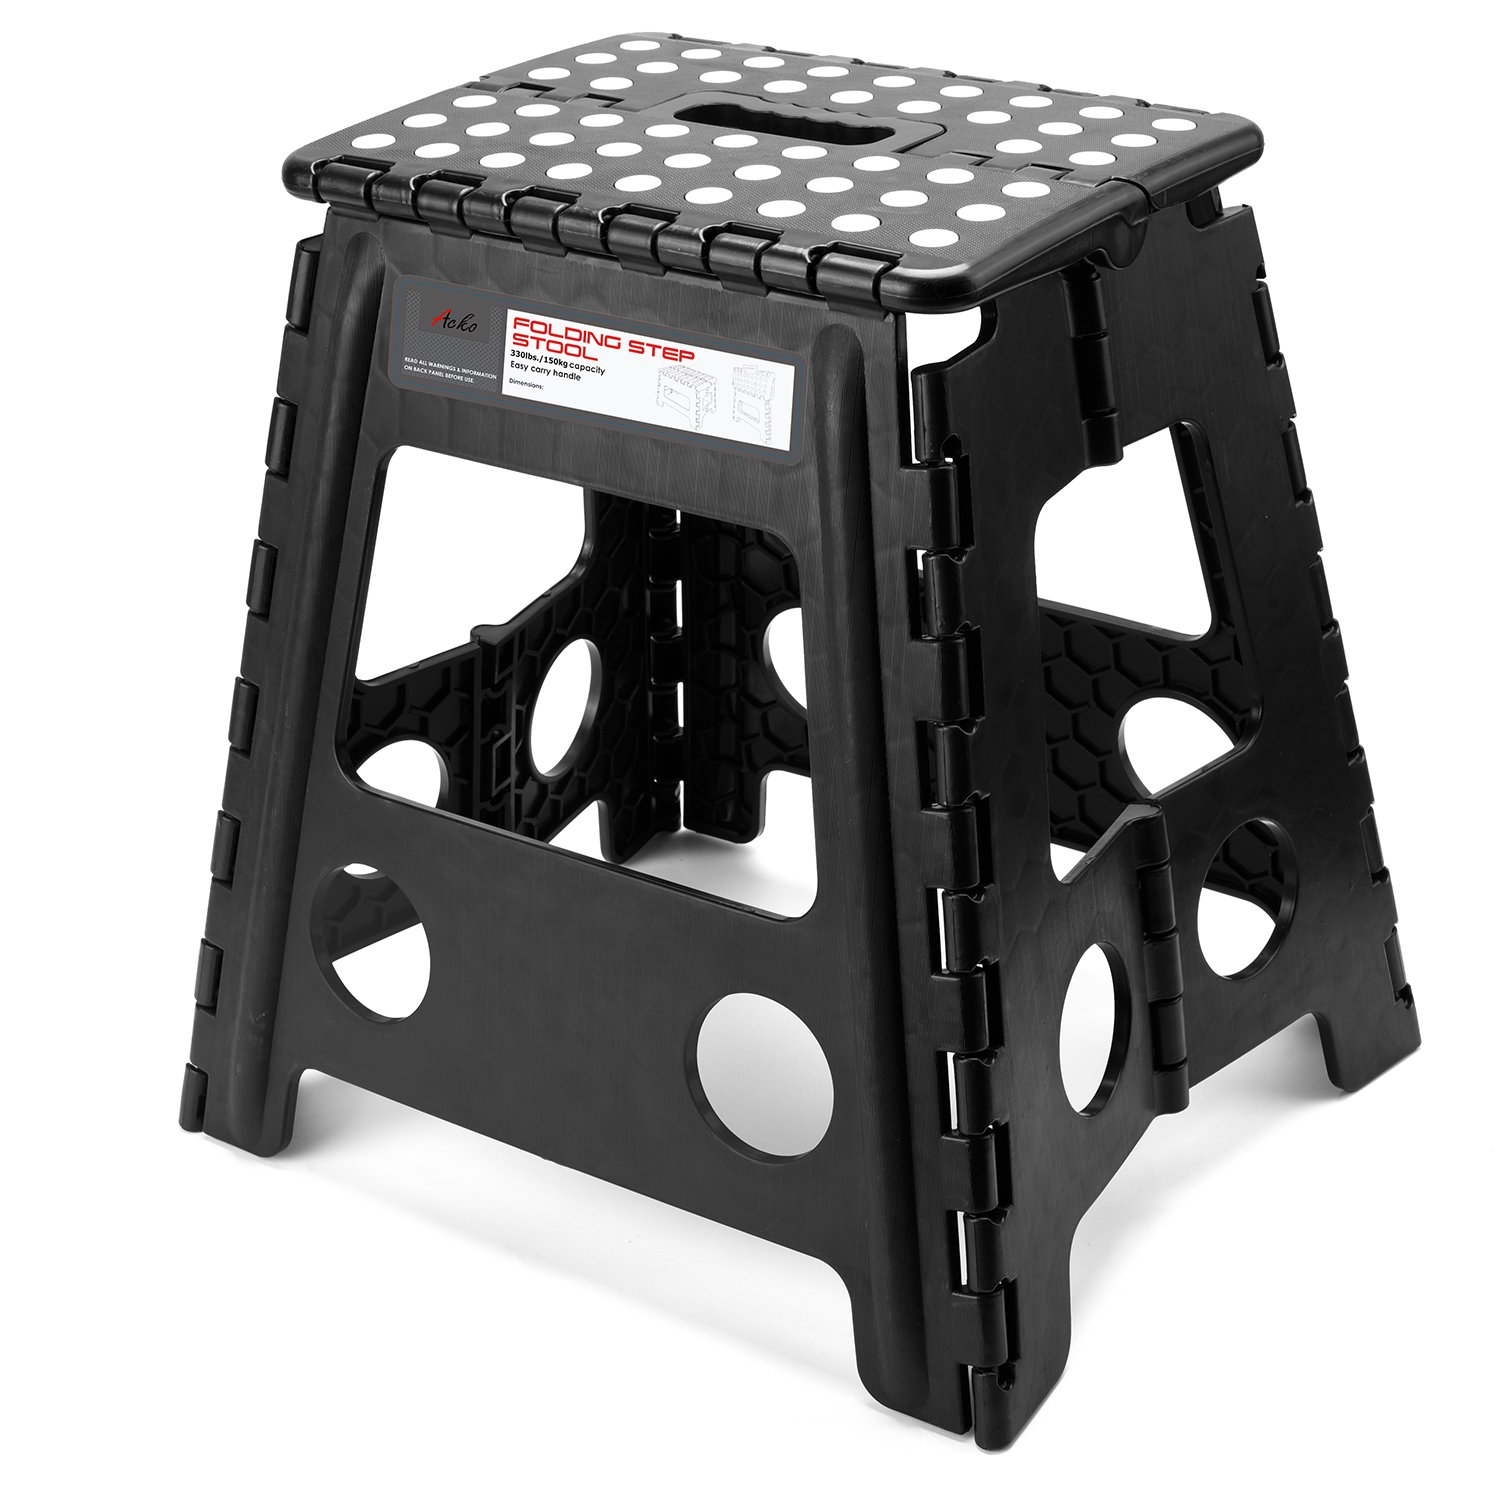 Acko 16 Inches Super Strong Folding Step Stool with handle for Adults and Kids, Kitchen Stepping Stools, Garden Step Stool Black